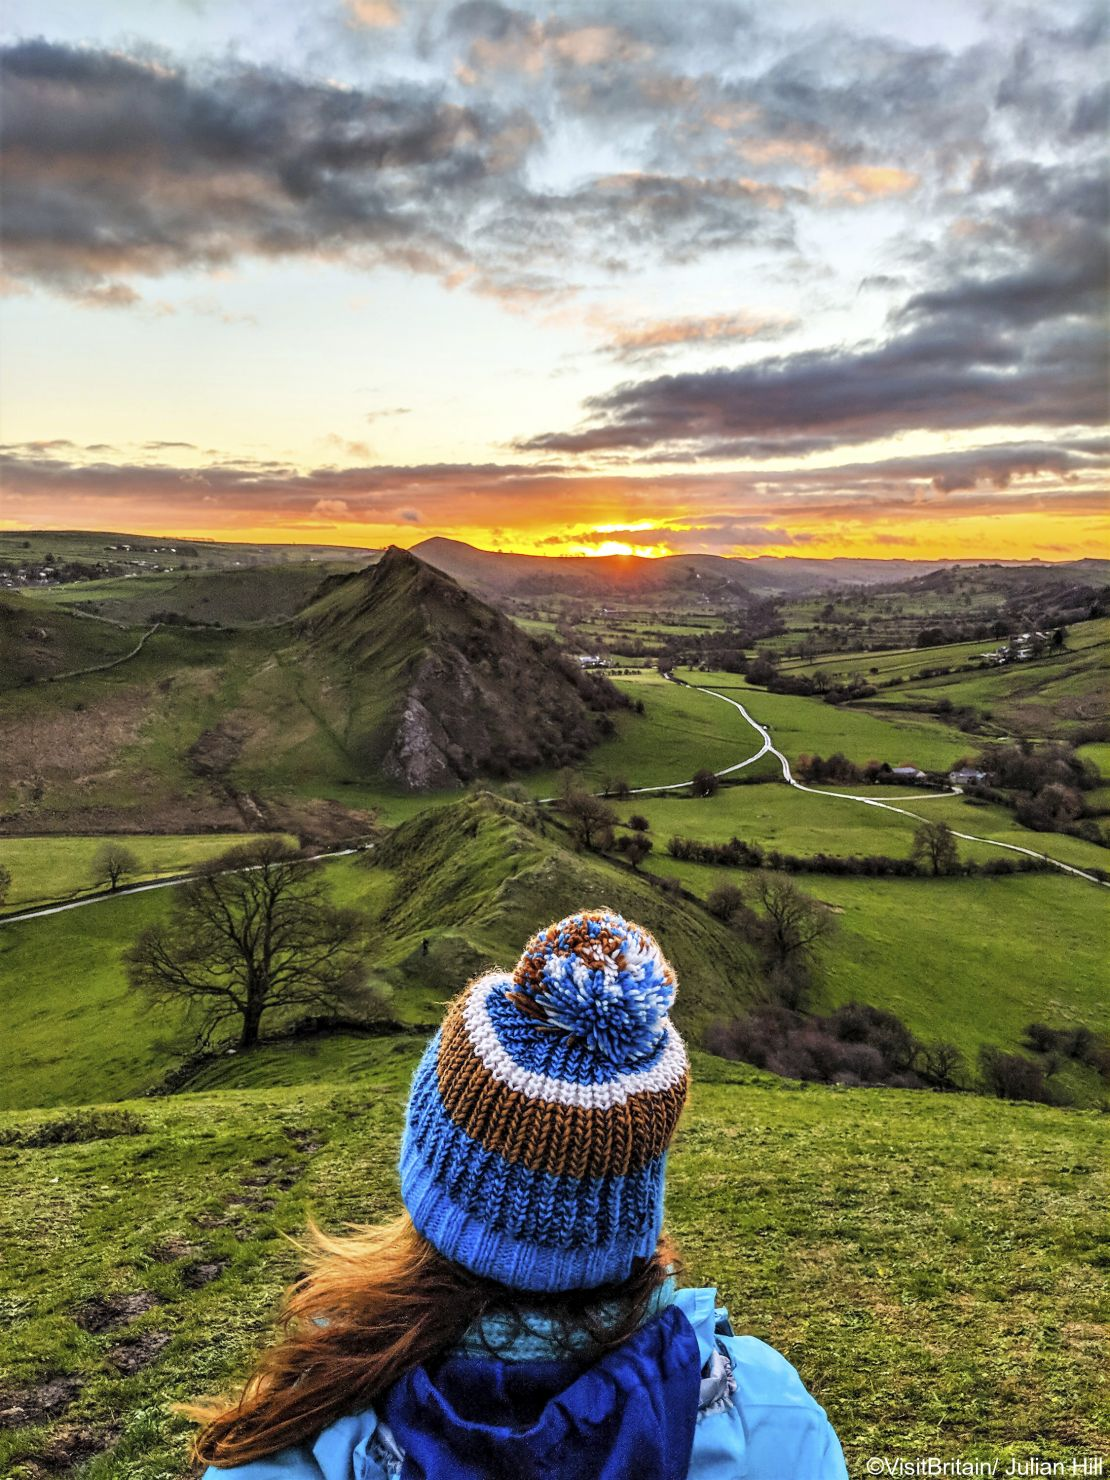 A woman sitting at the top of Chrome Hill, Derbyshire, enjoying the view and sunset.